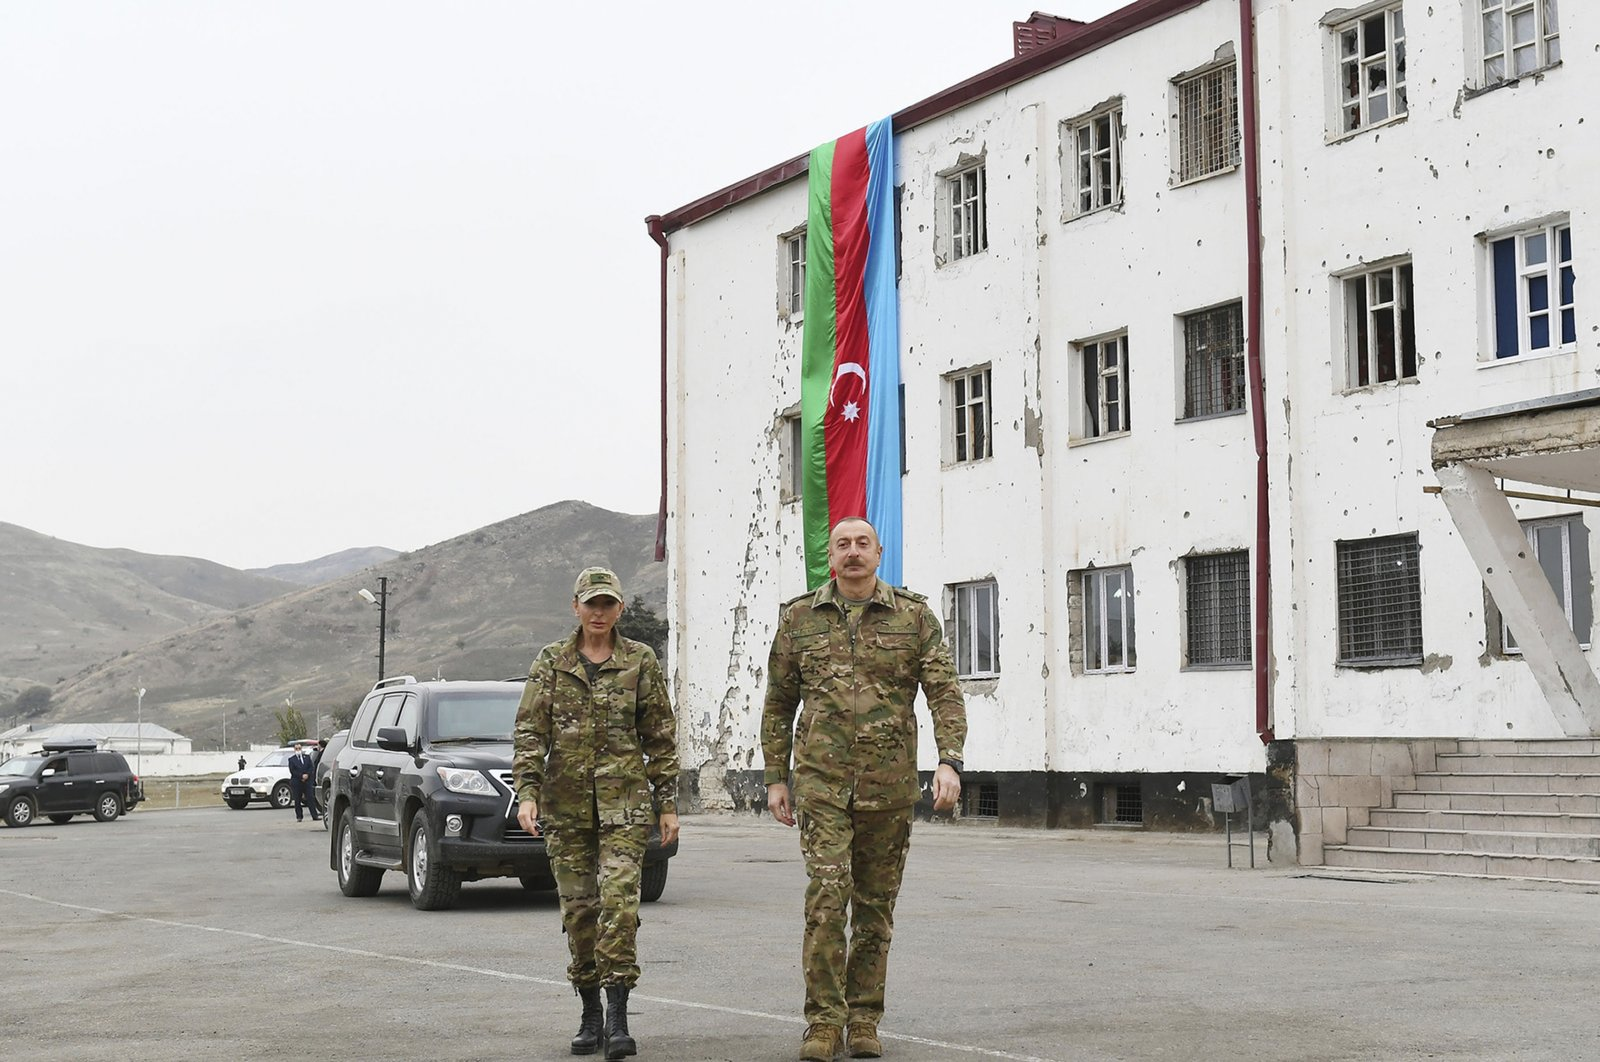 This handout photo provided by Azerbaijan's Presidential Press Office, shows President Ilham Aliyev and his wife and Vice President Mehriban Aliyeva visiting the liberated Fuzuli and Jabrayil districts of Azerbaijan, Nov. 16, 2020. (Azerbaijani Presidential Press Office via AP)